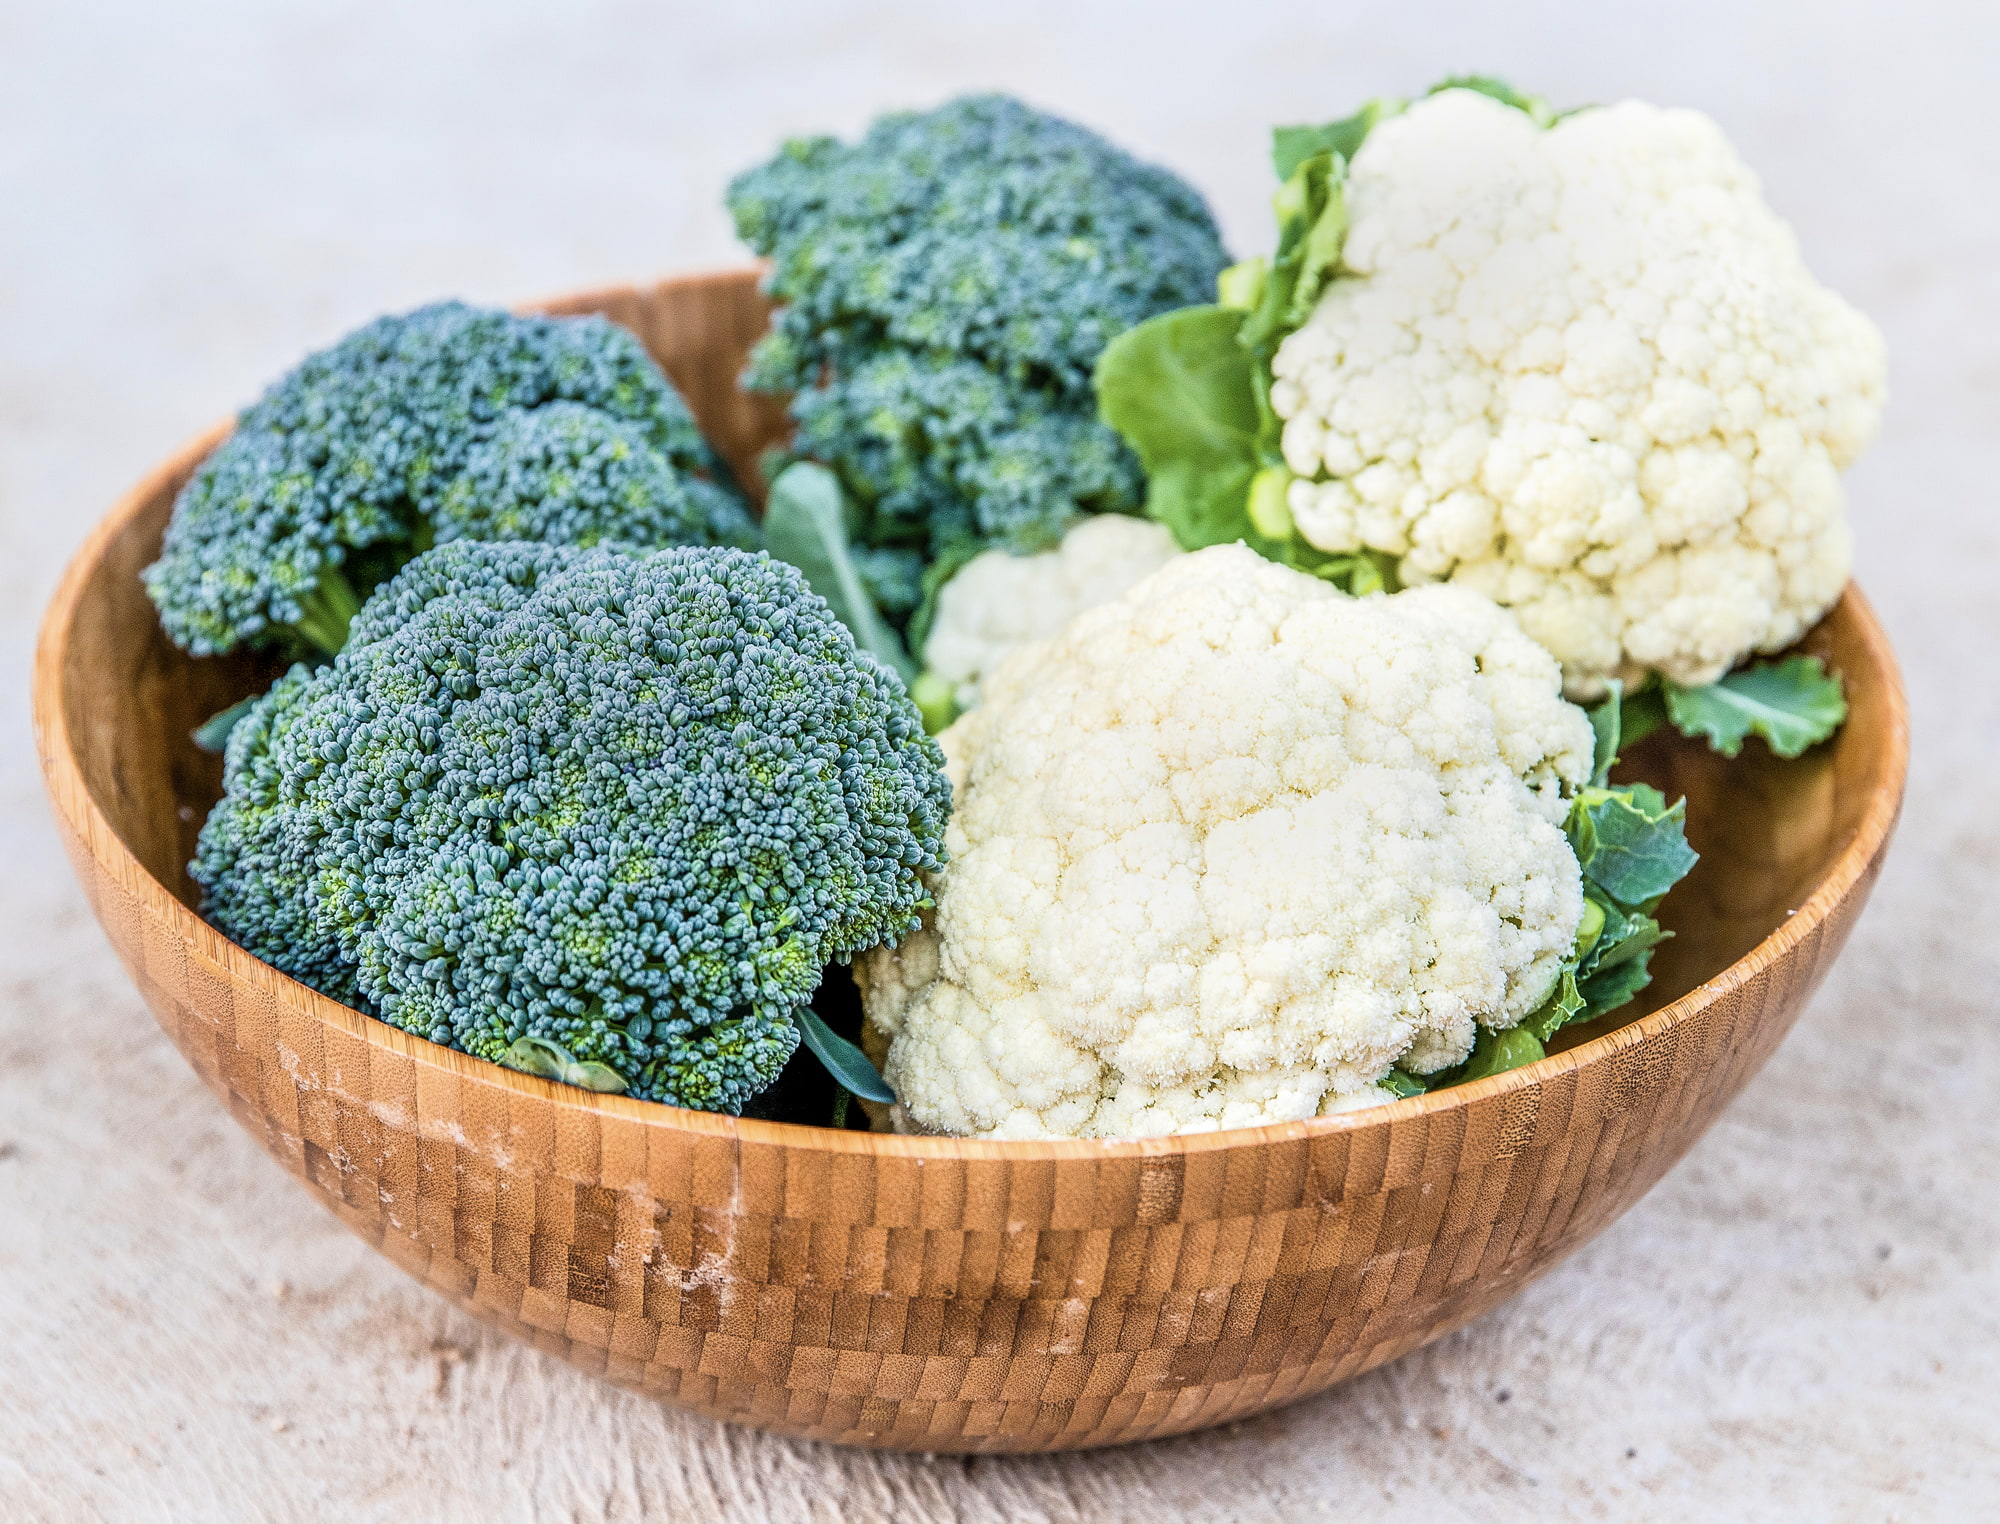 bowl of broccoli and cauliflower